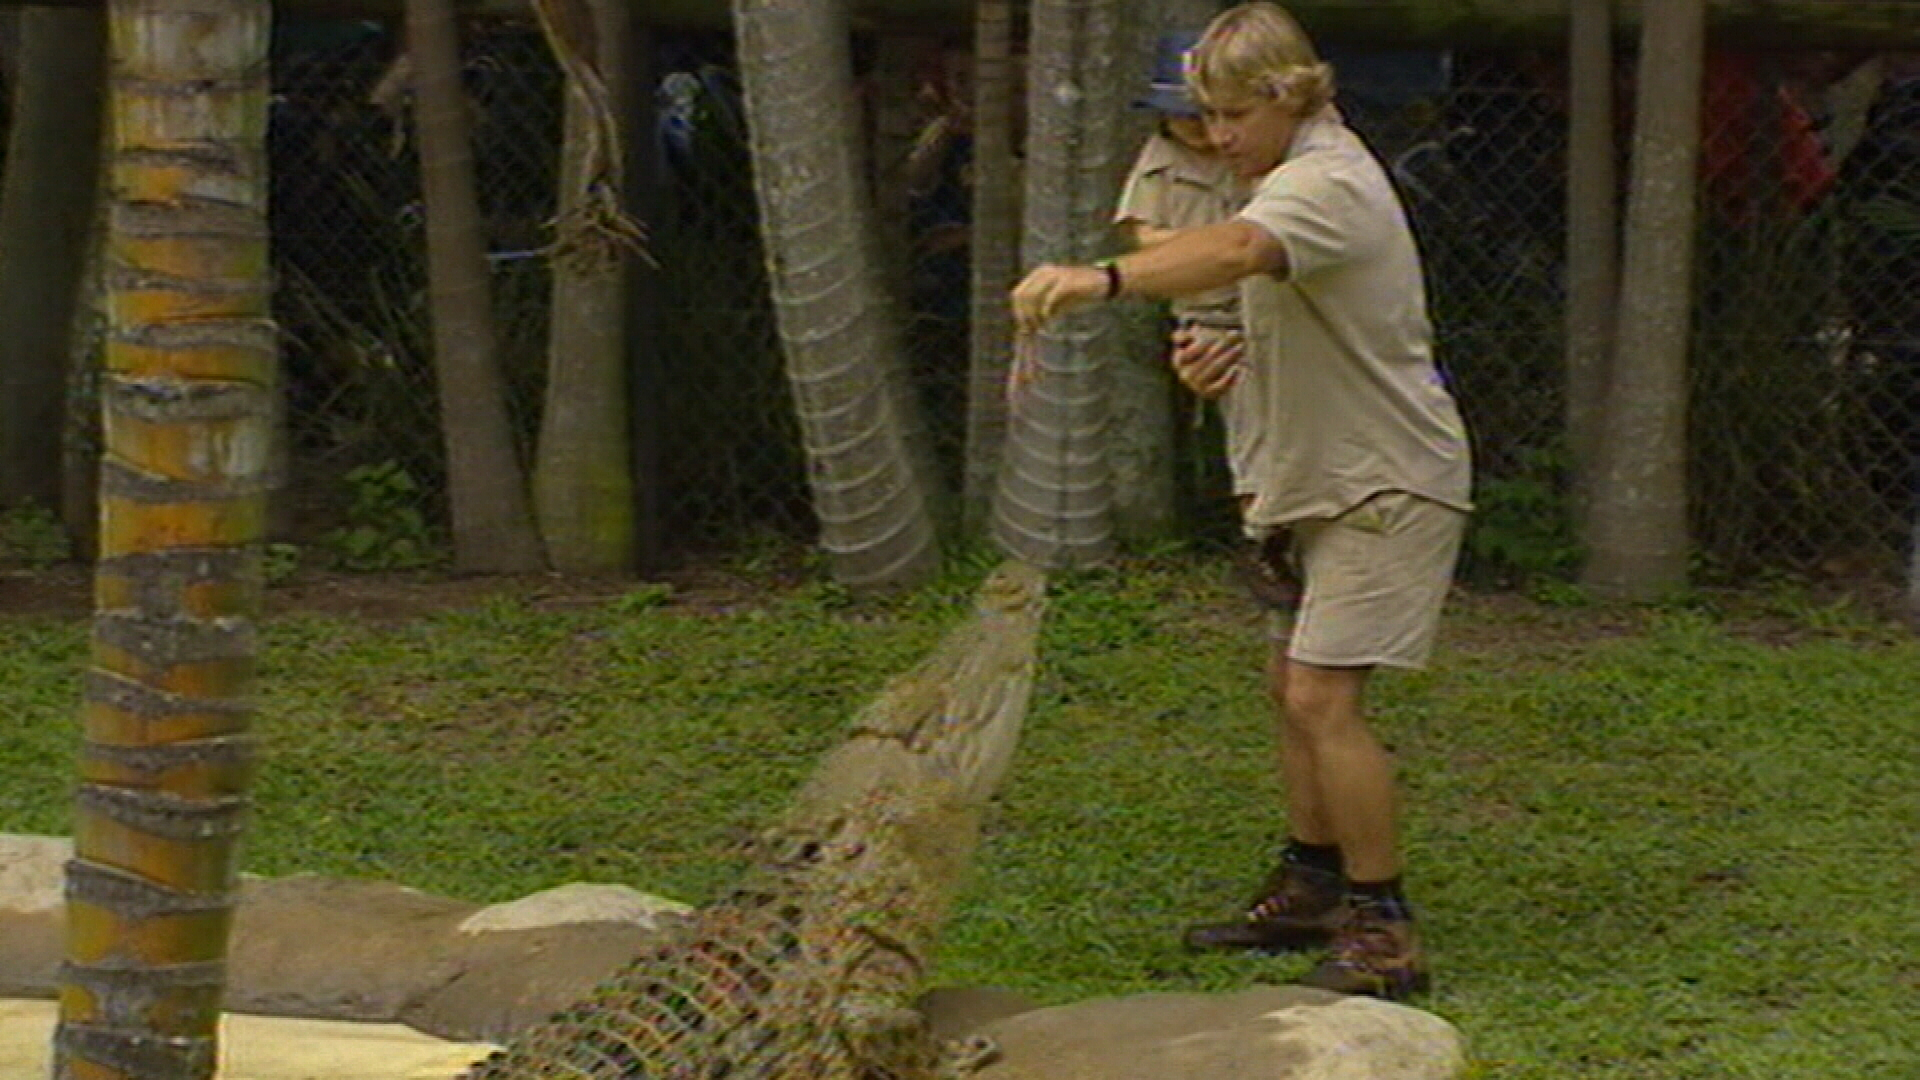 Google Doodle marks 'Crocodile Hunter' Steve Irwin's birthday